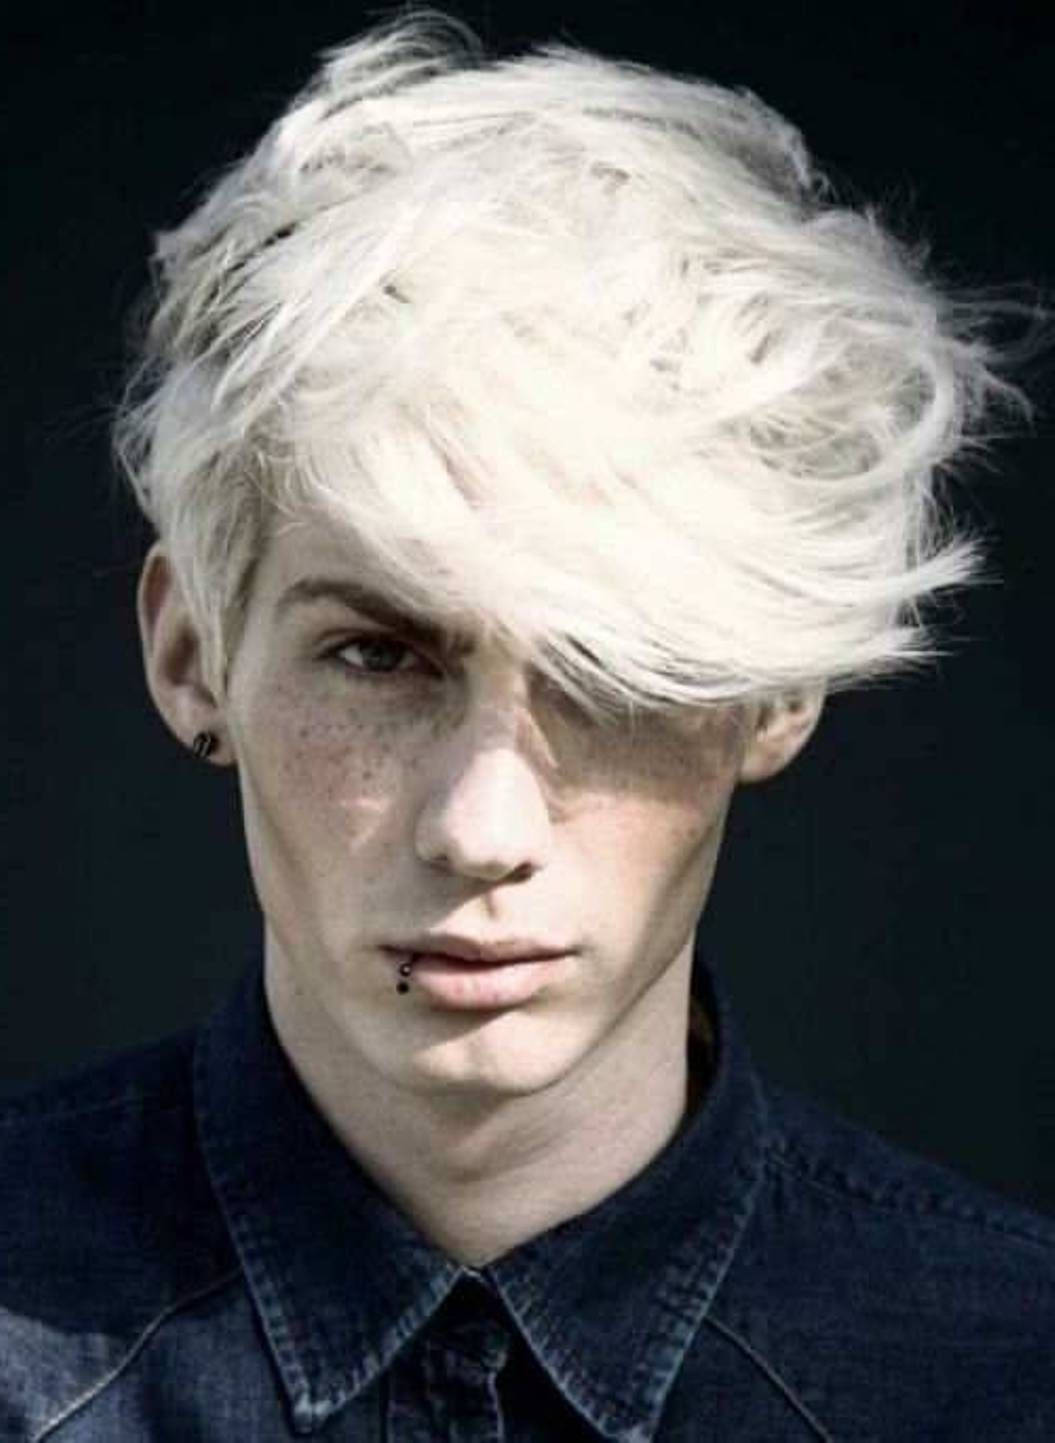 Platinum blonde men hairstyle summer hair color i like it it